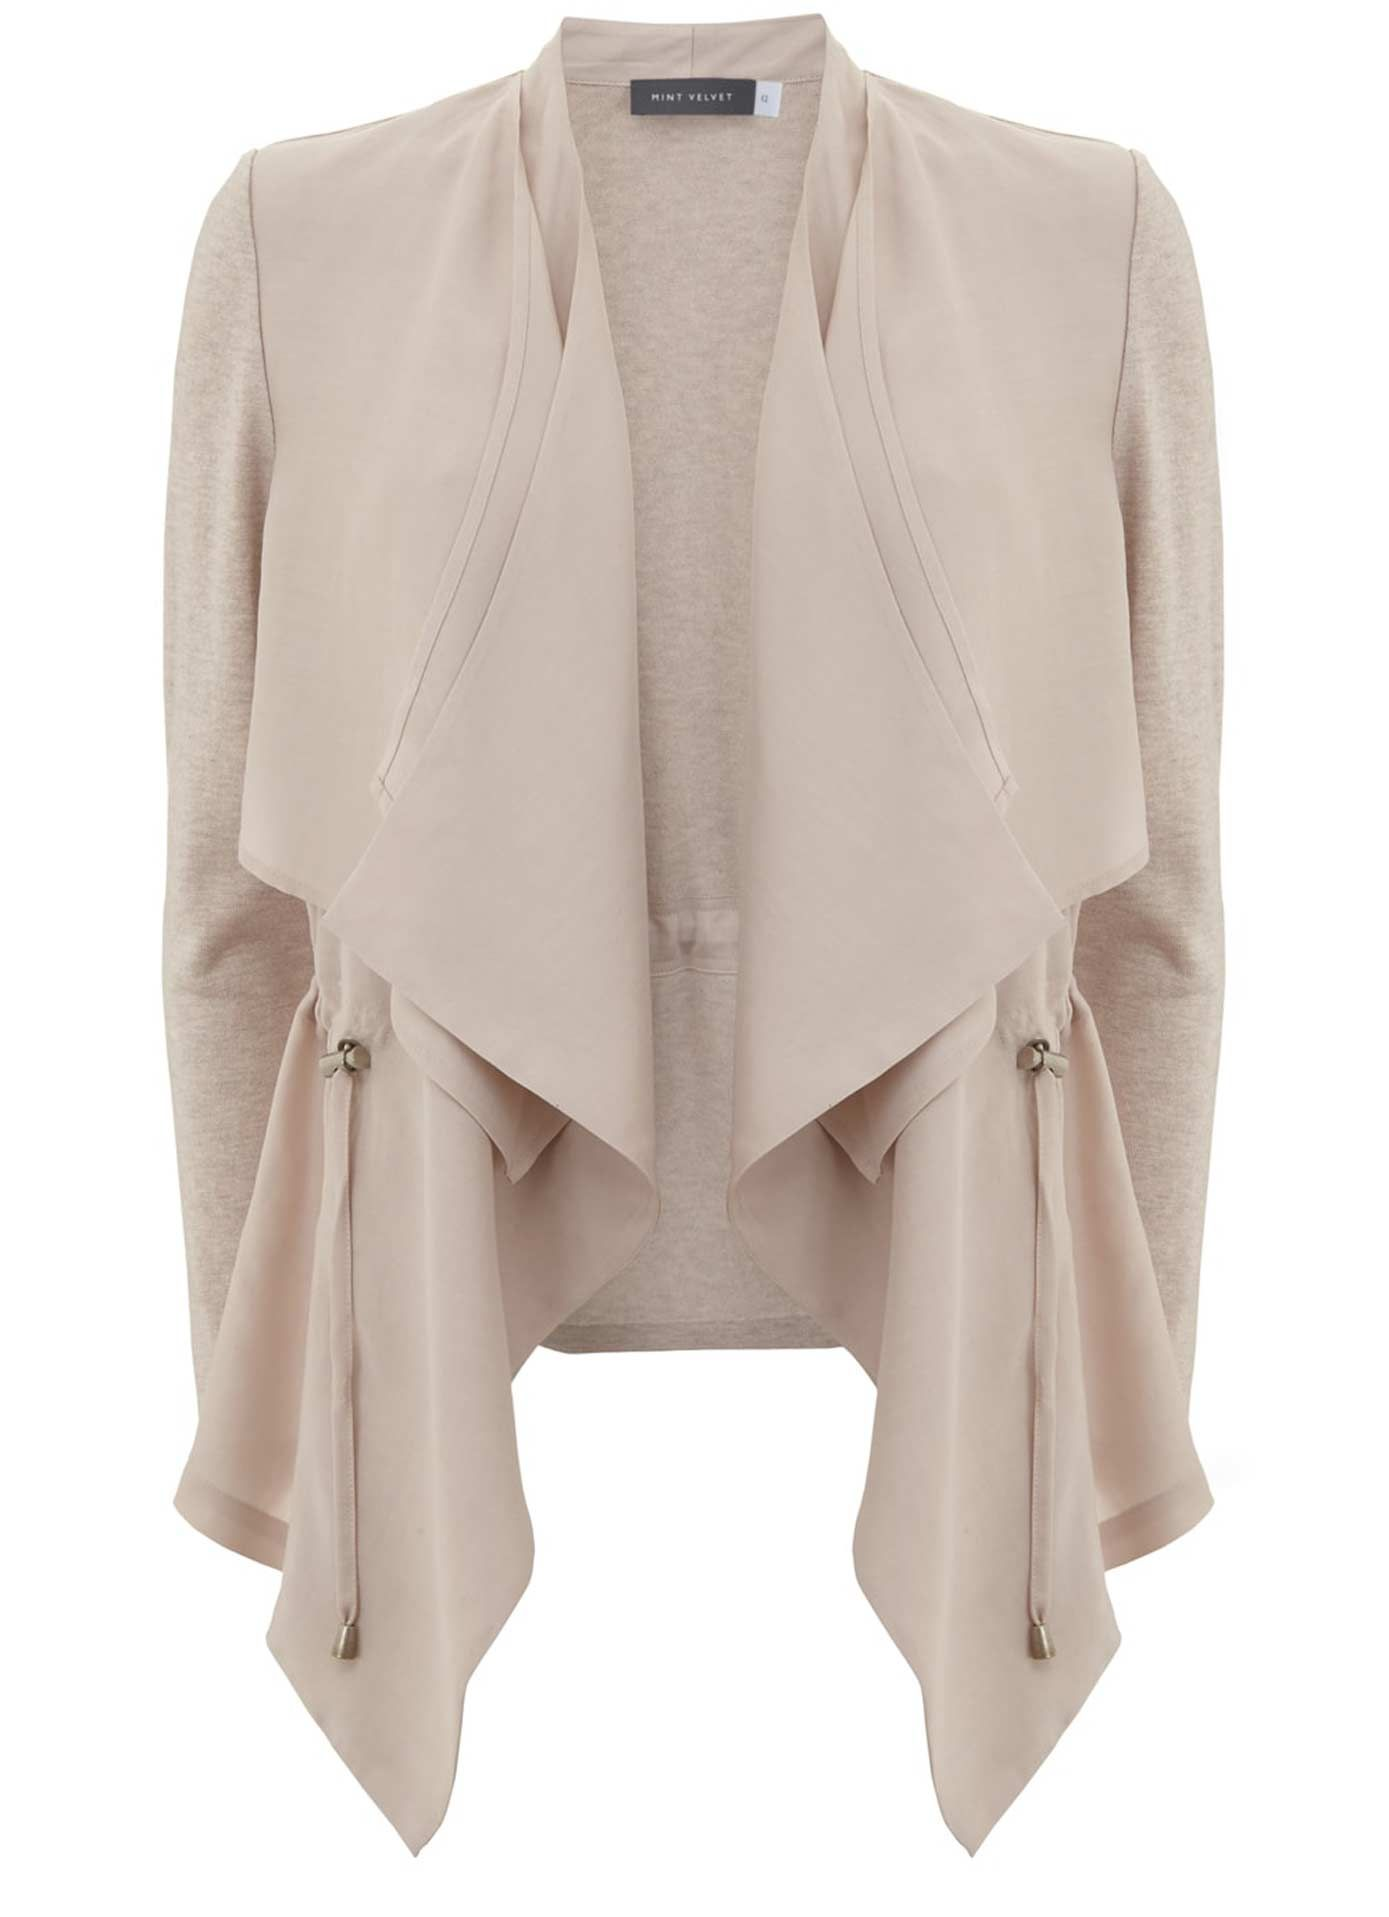 Nude Cupro Short Cardigan | Clothes and Fashion